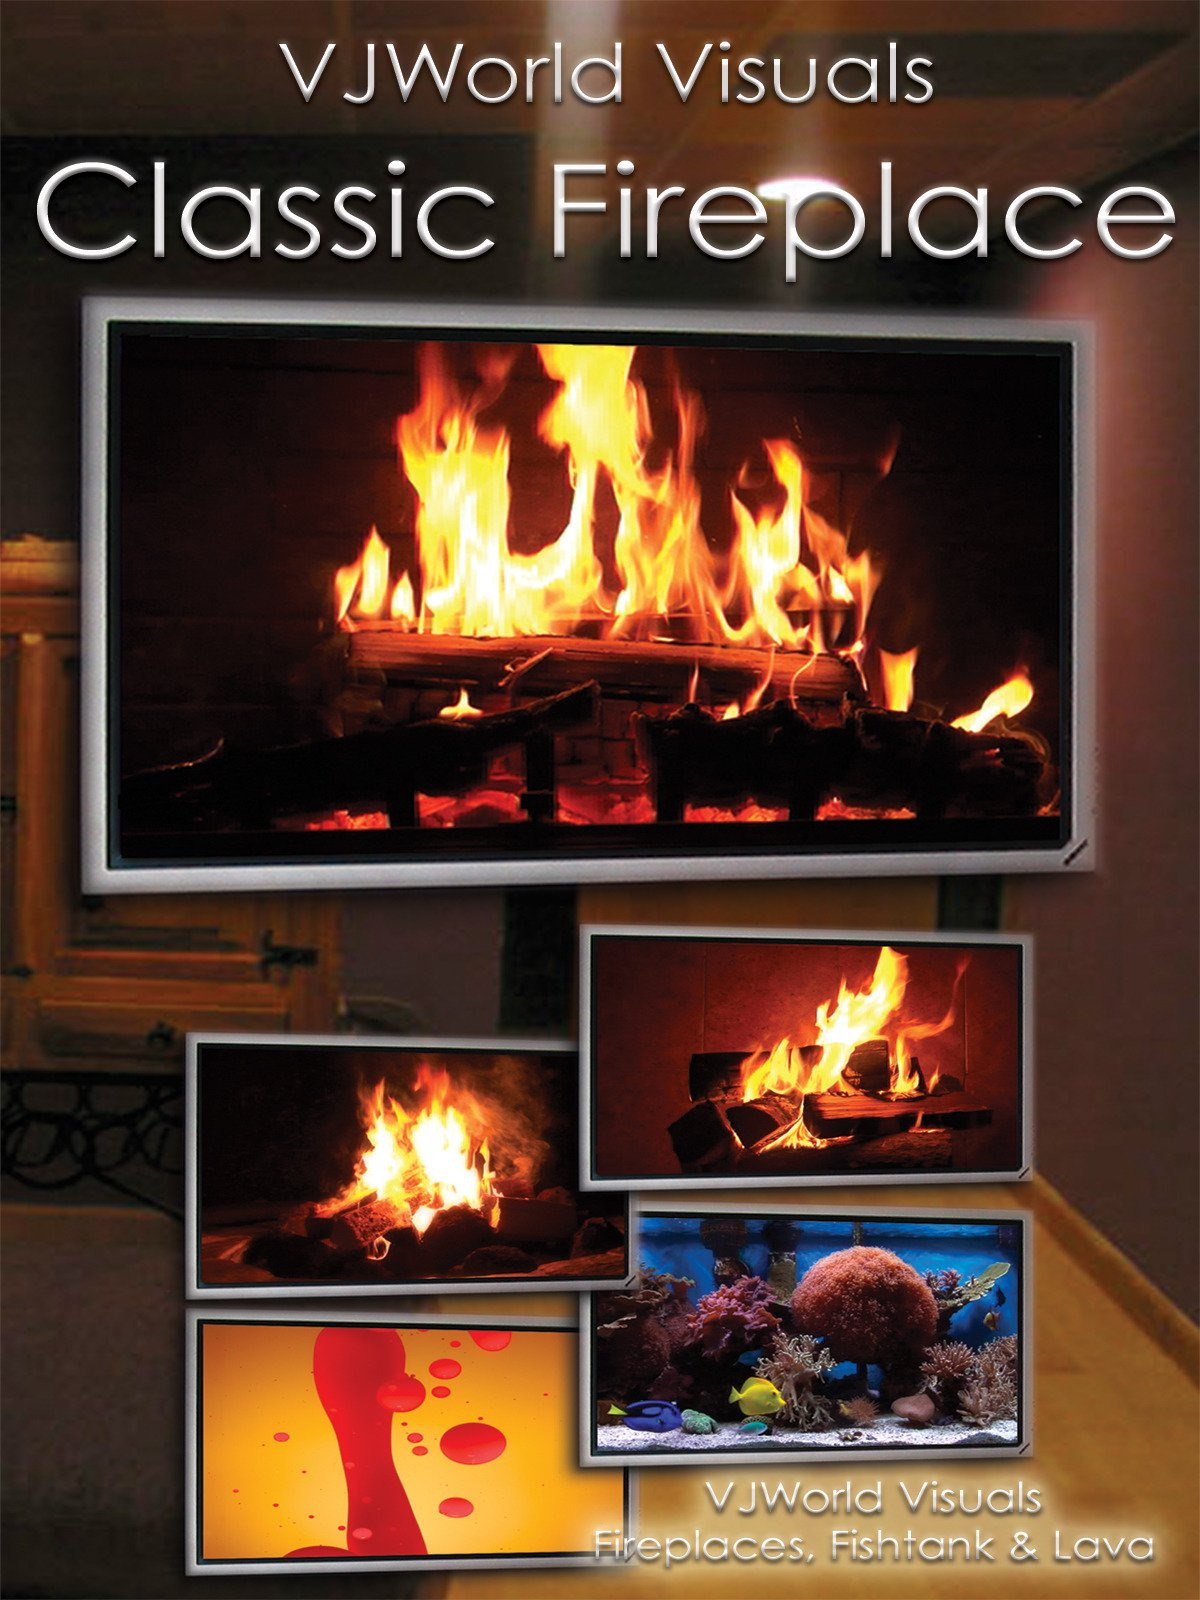 VJWorld Visuals Classic Fireplace (Fireplaces, Fishtank & Lava)